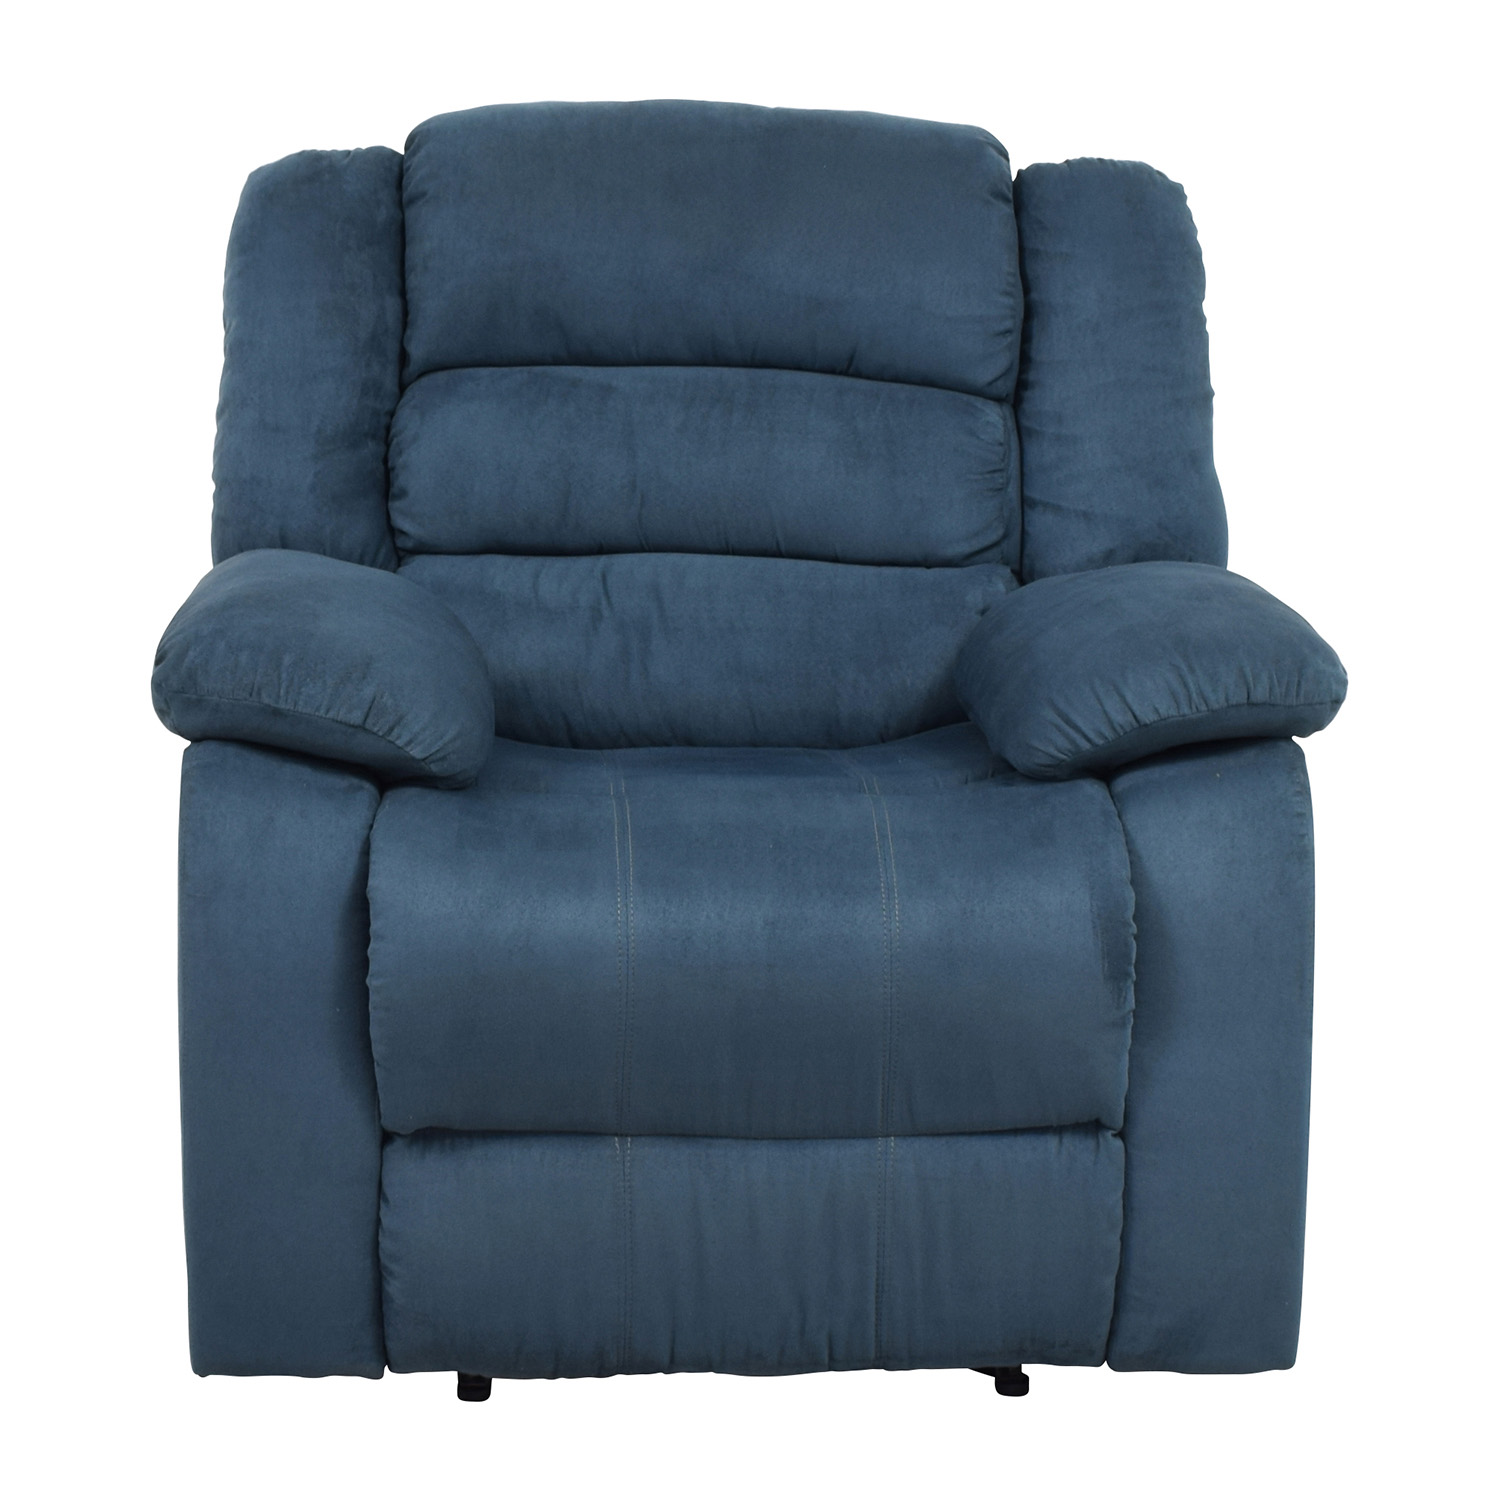 buy Nathaniel Home Nathaniel Home Express Addison Contemporary Recliner online